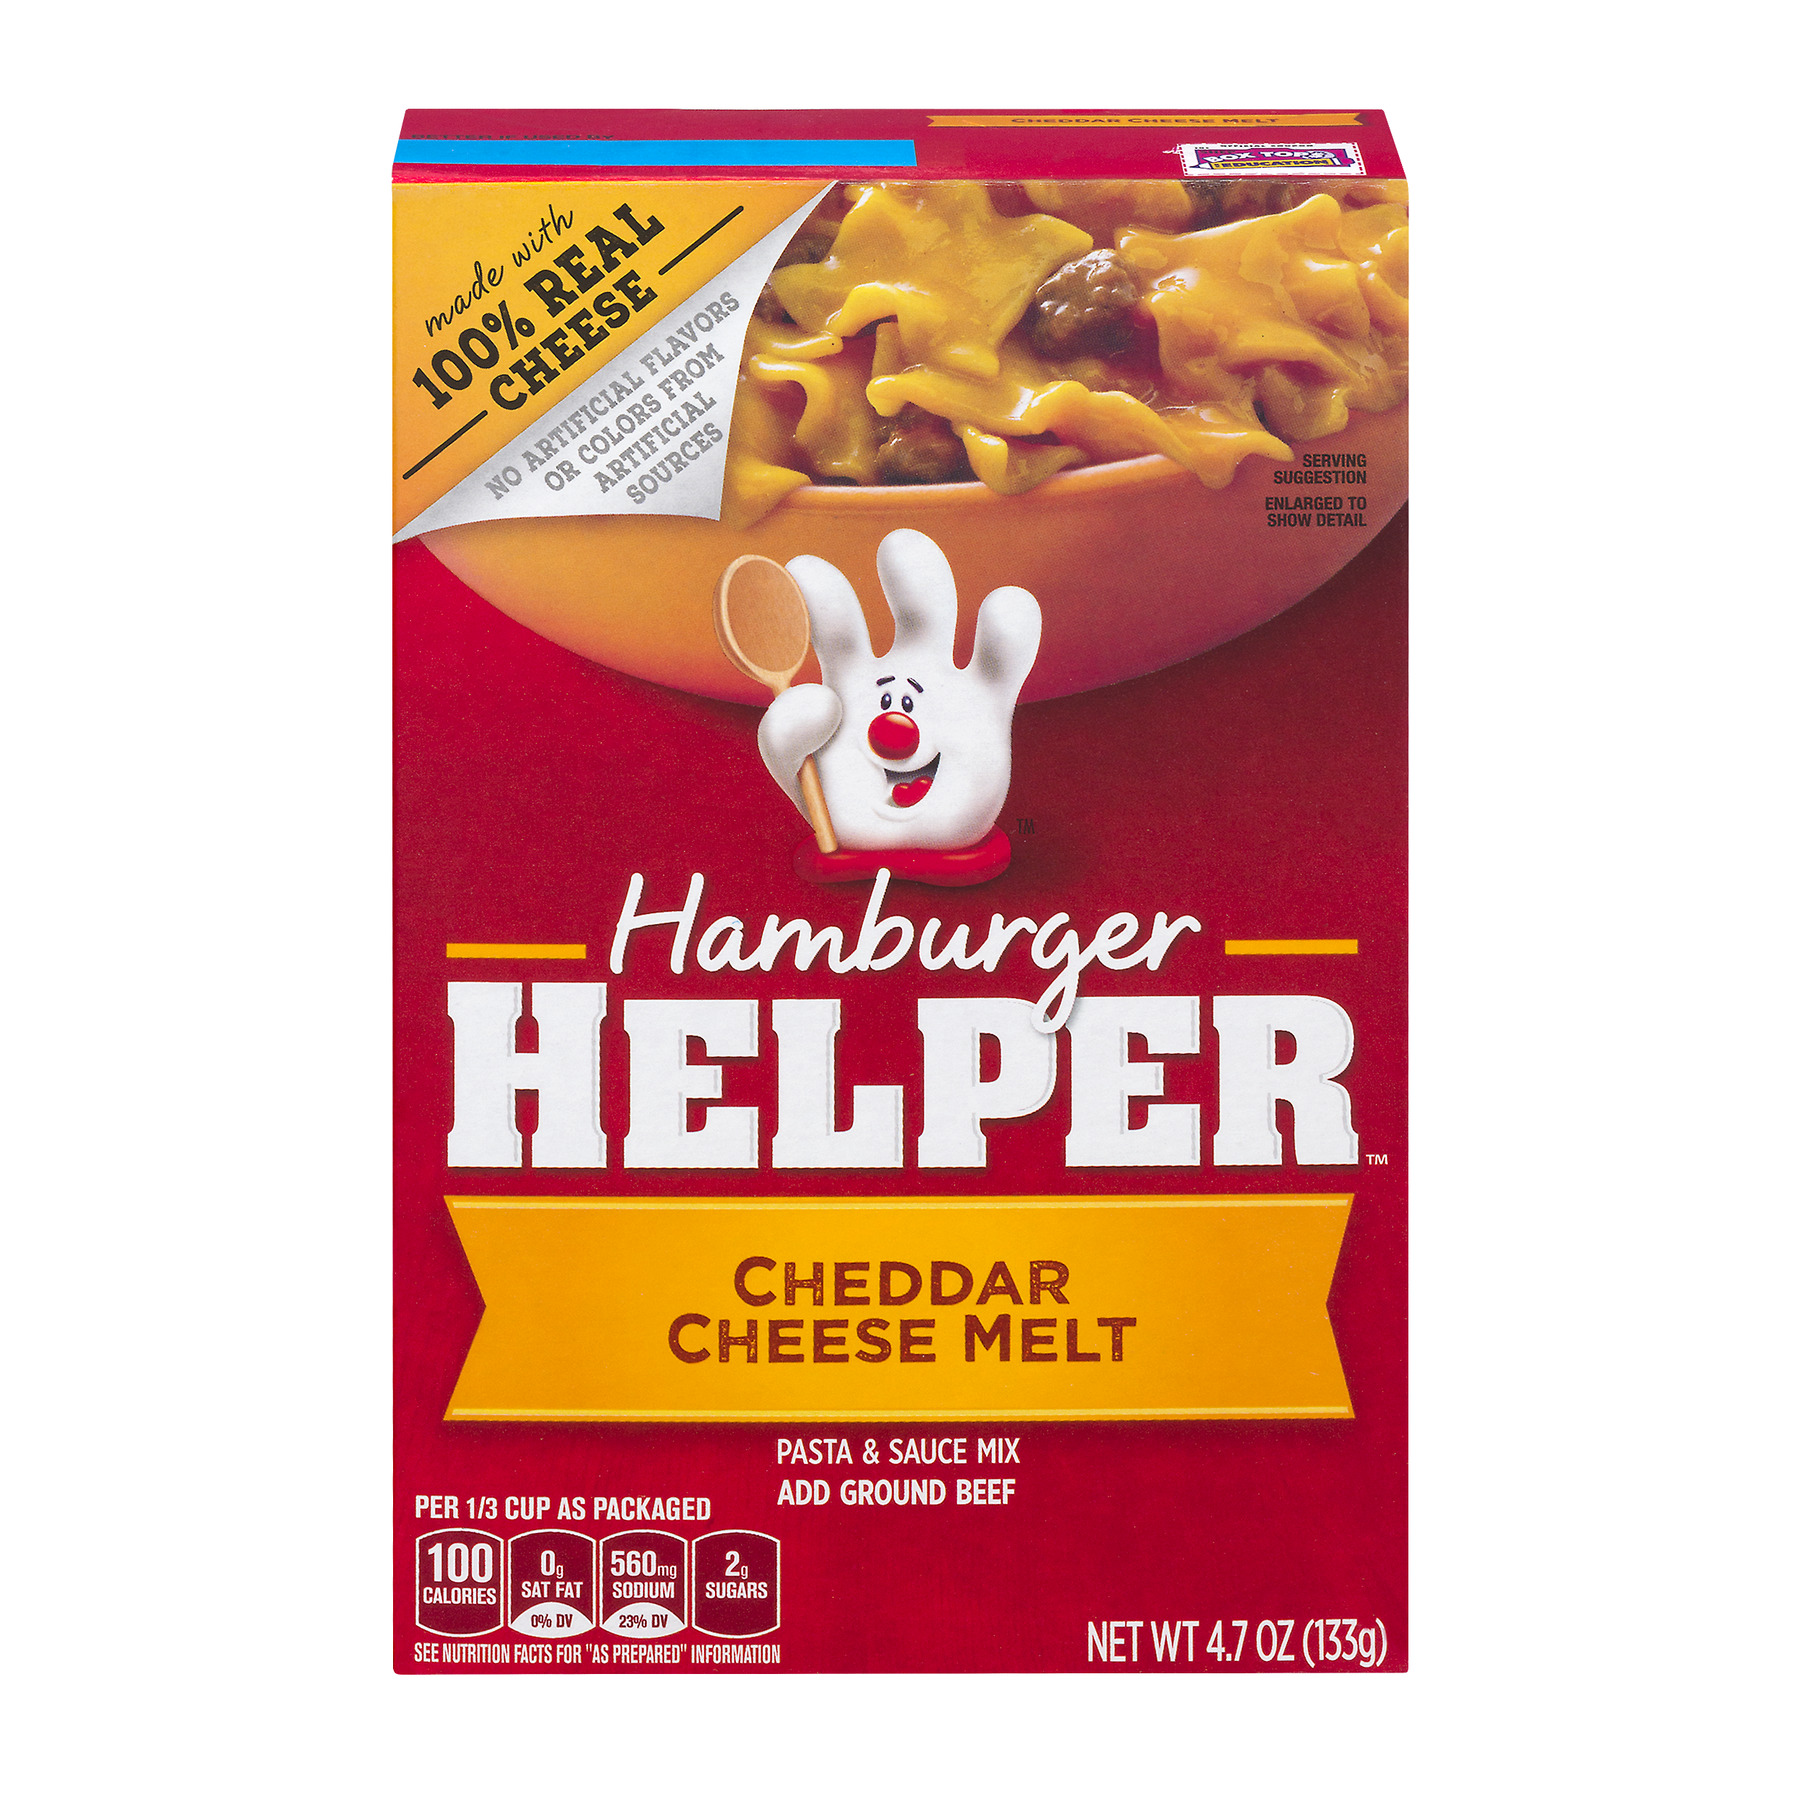 Betty Crocker Hamburger Helper Cheddar Cheese Melt 4.7 oz Box